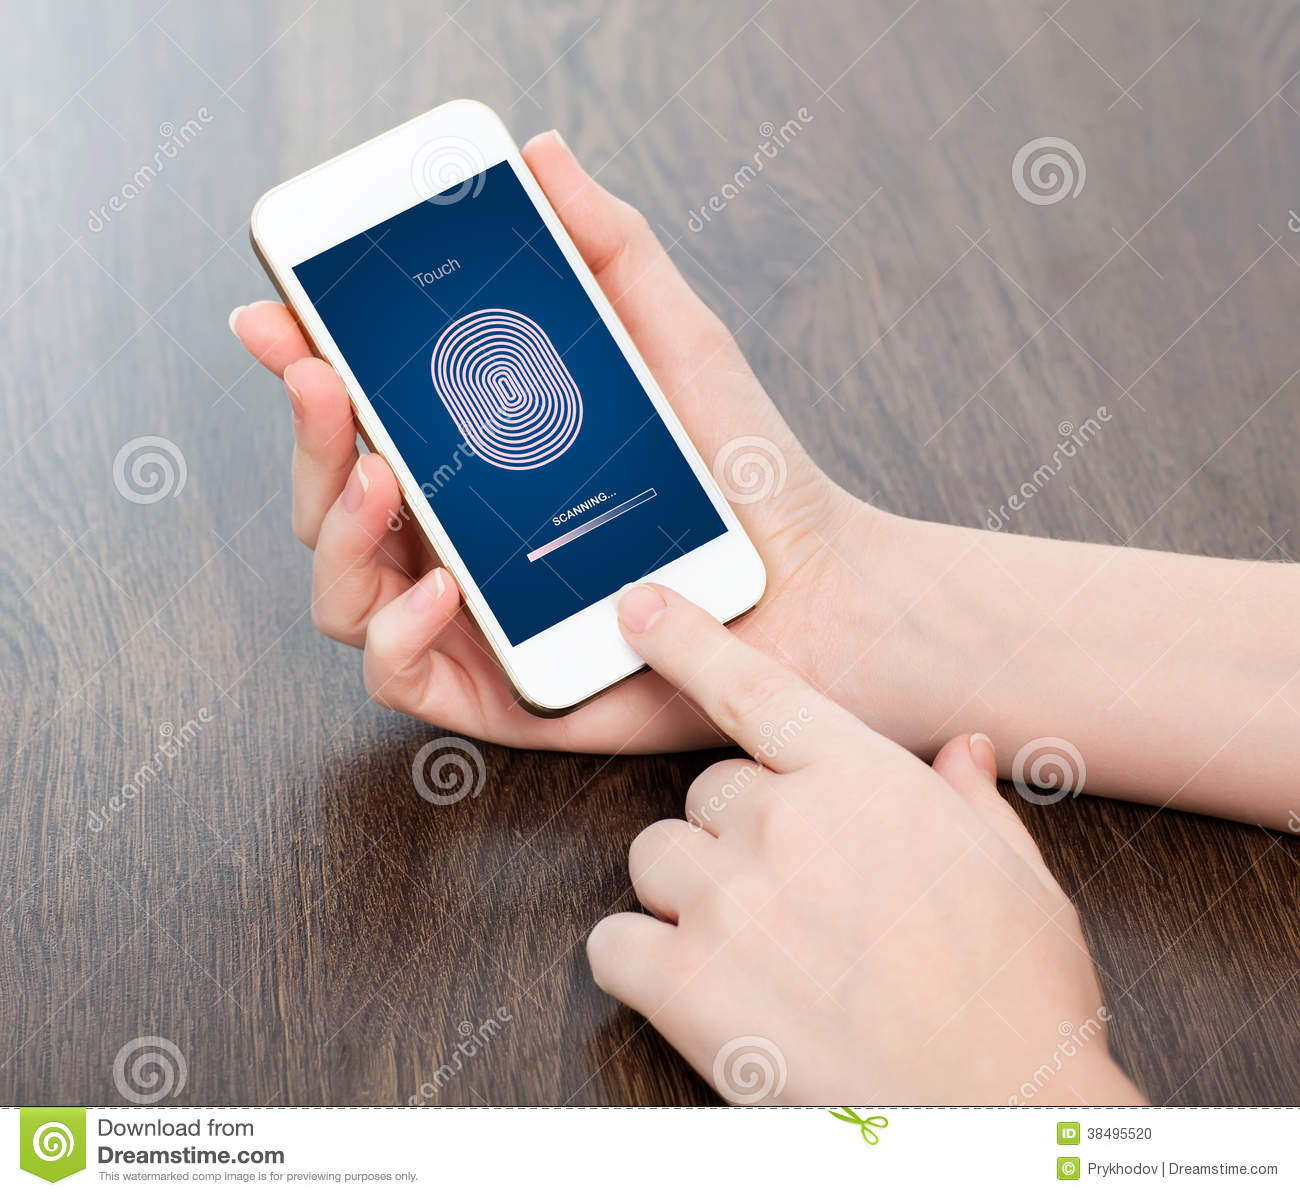 Female hands holding a phone and entering the PIN code of finger